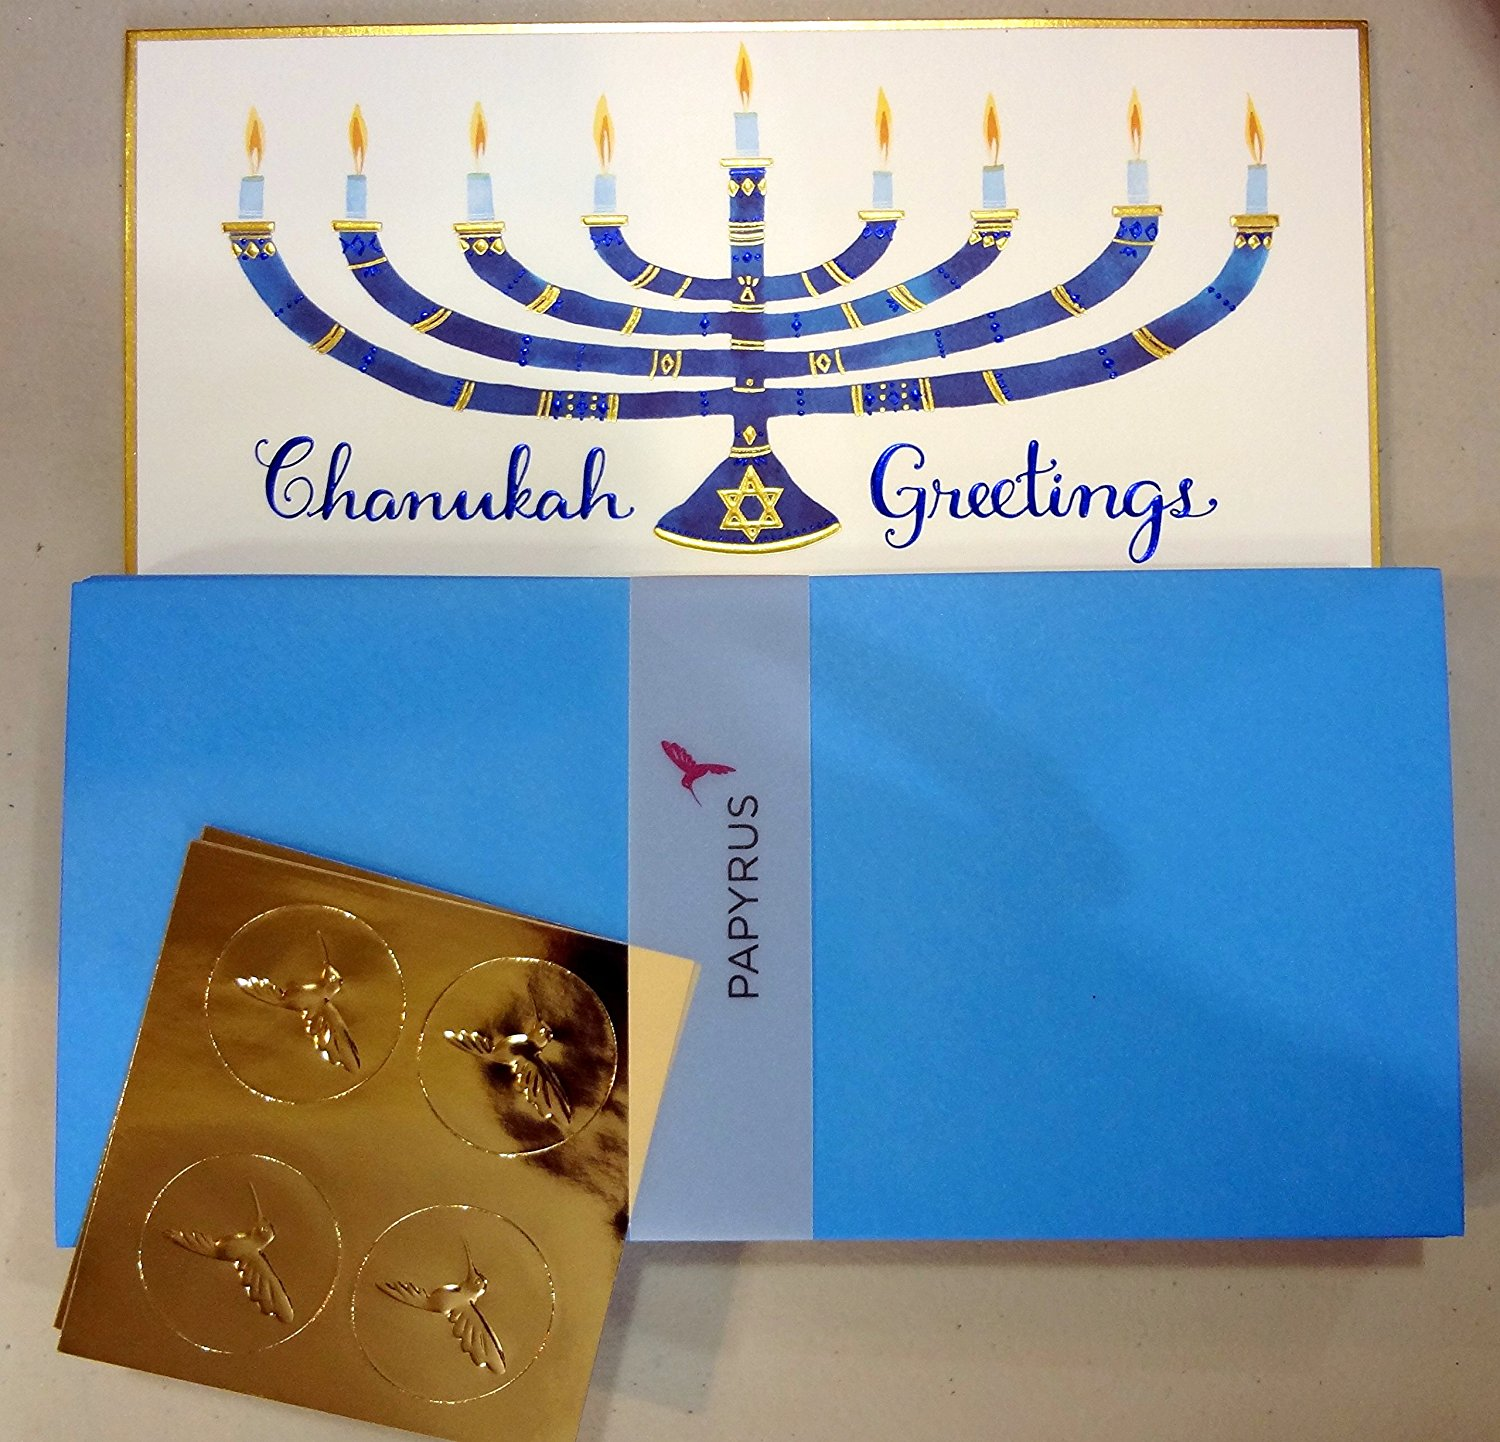 Cheap cards papyrus find cards papyrus deals on line at alibaba get quotations papyrus chanukah greeting cards set of 16 kristyandbryce Gallery